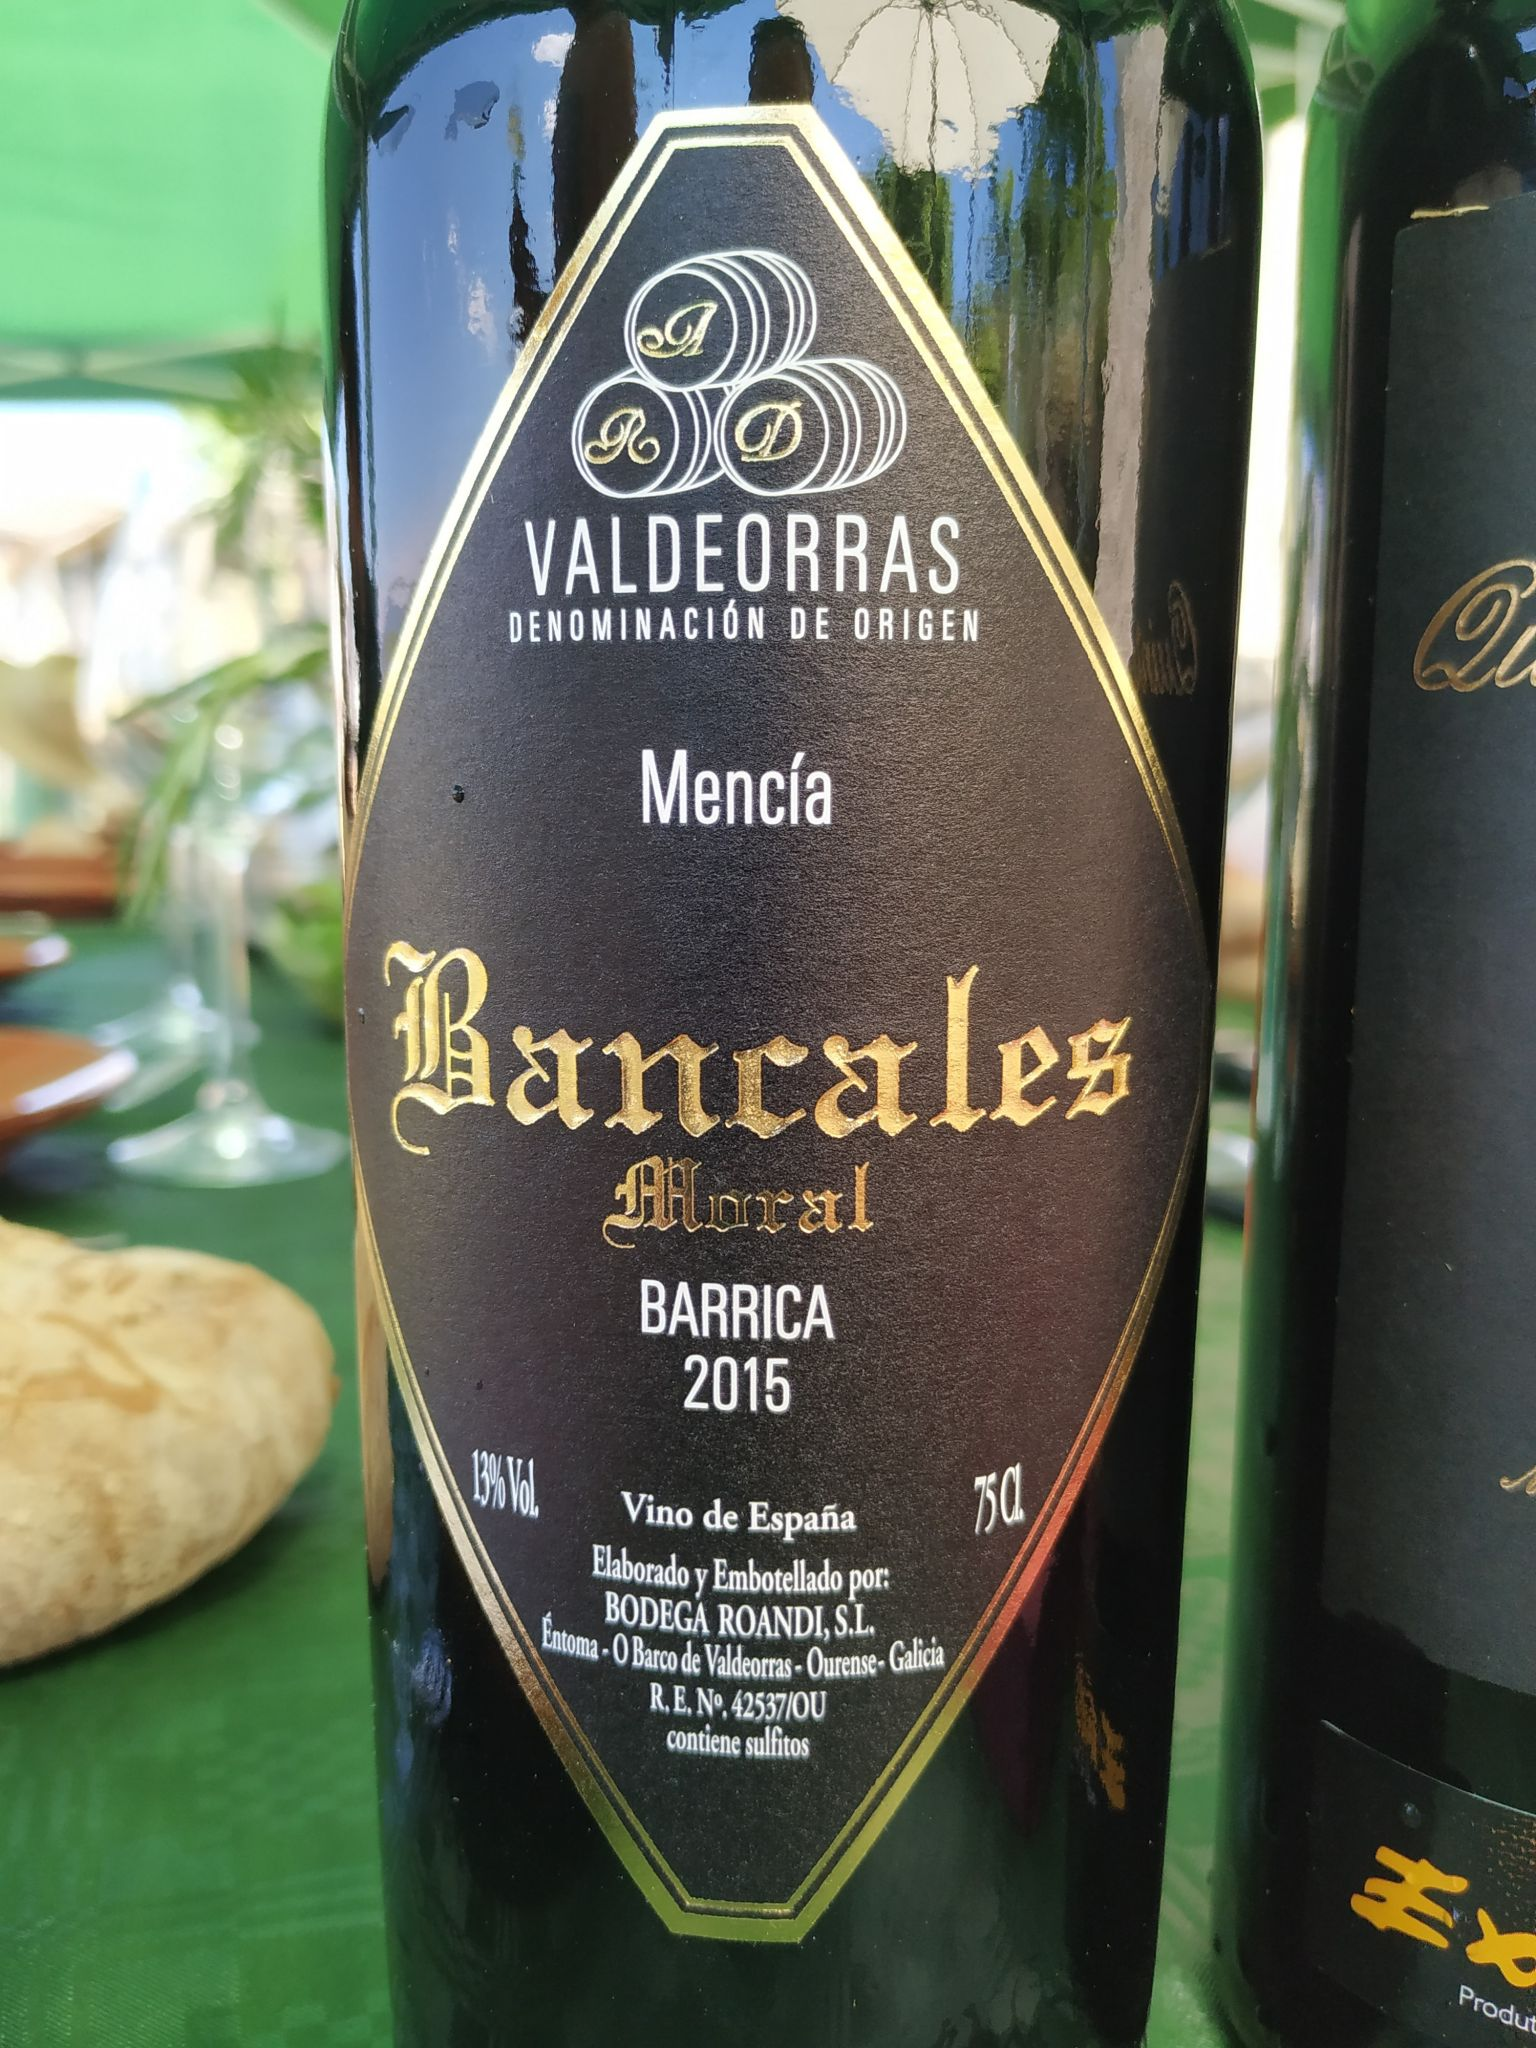 Bancales Moral Barrica